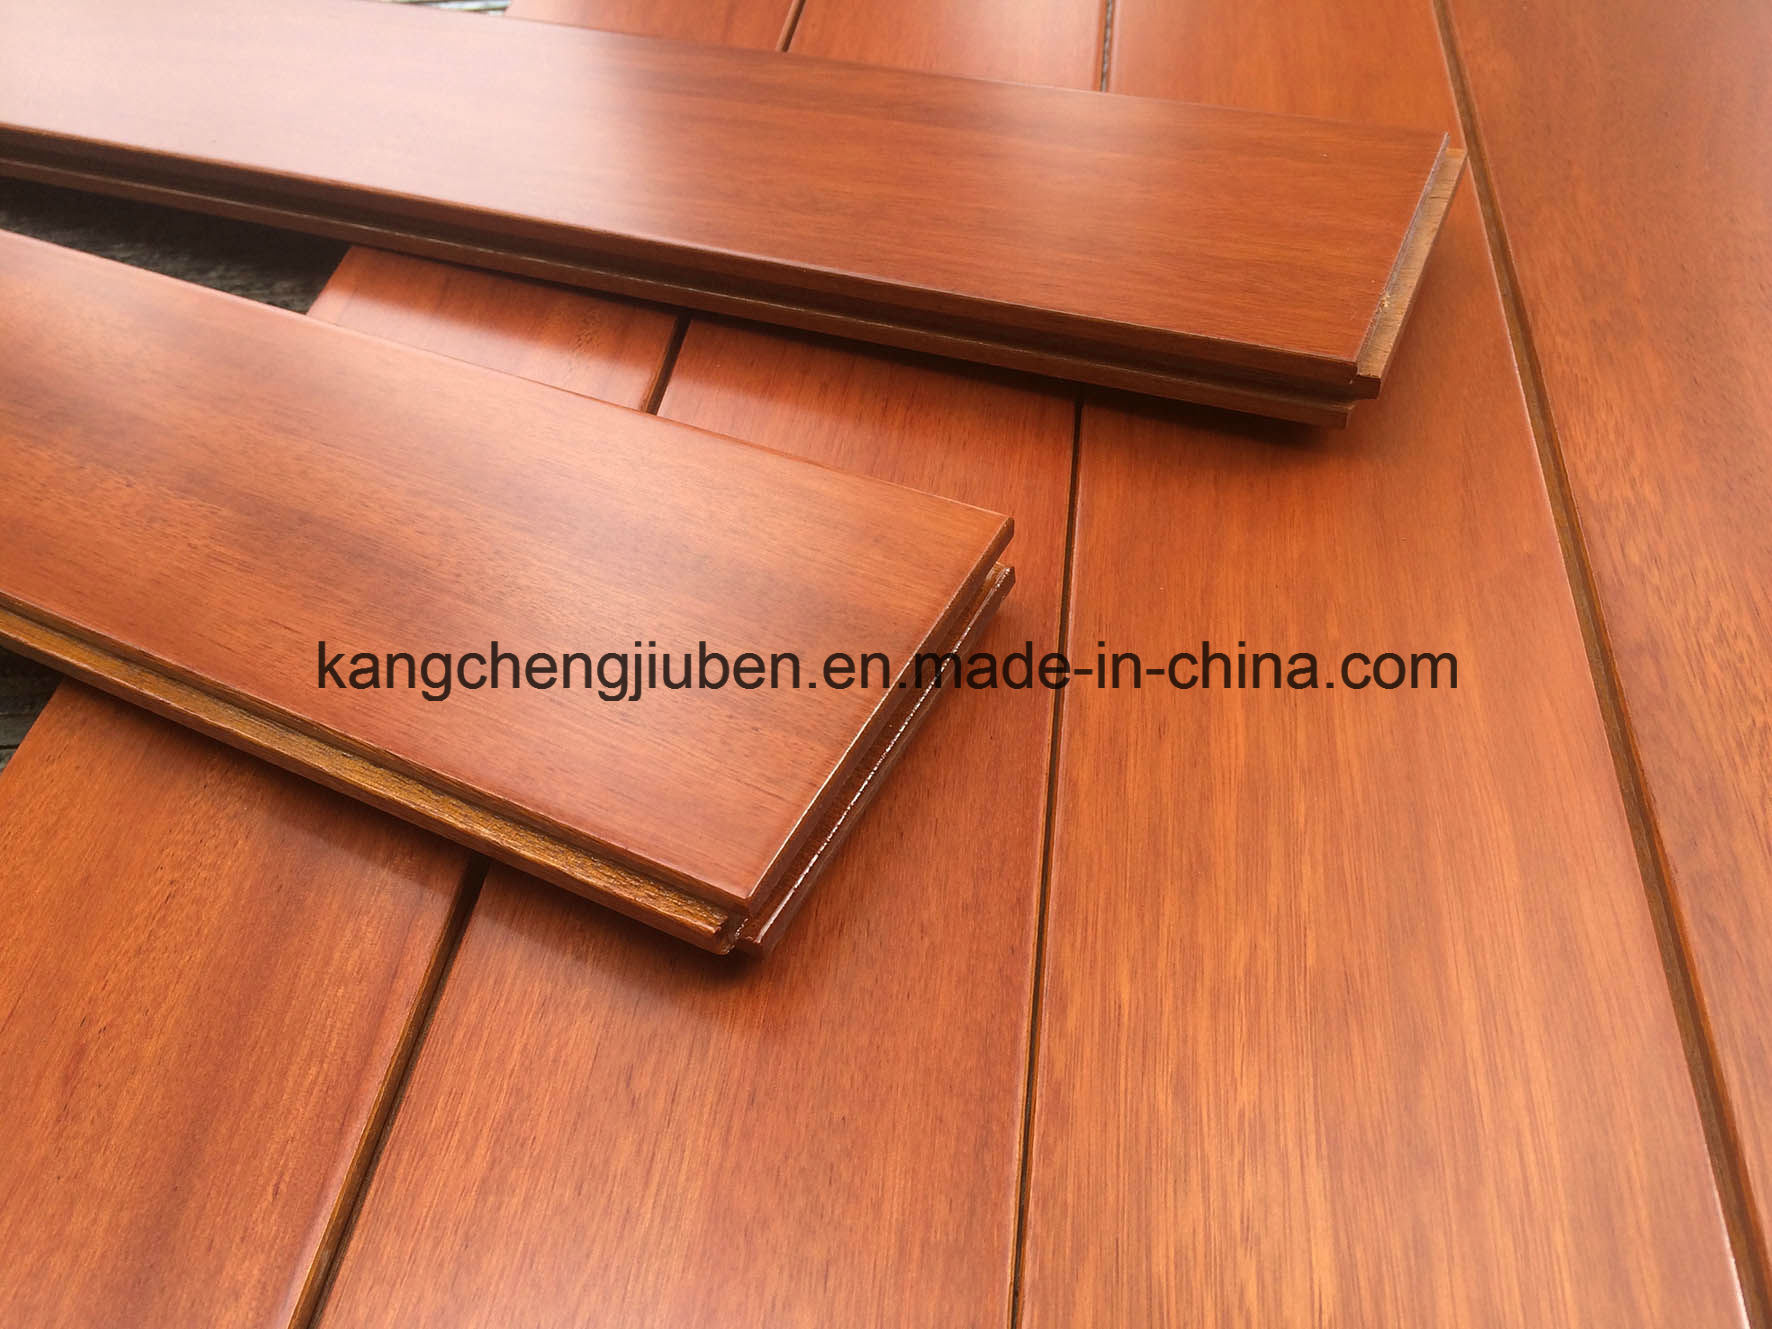 Manufacturer Solid Wood Parquet/Hardwood Flooring (MD-04)